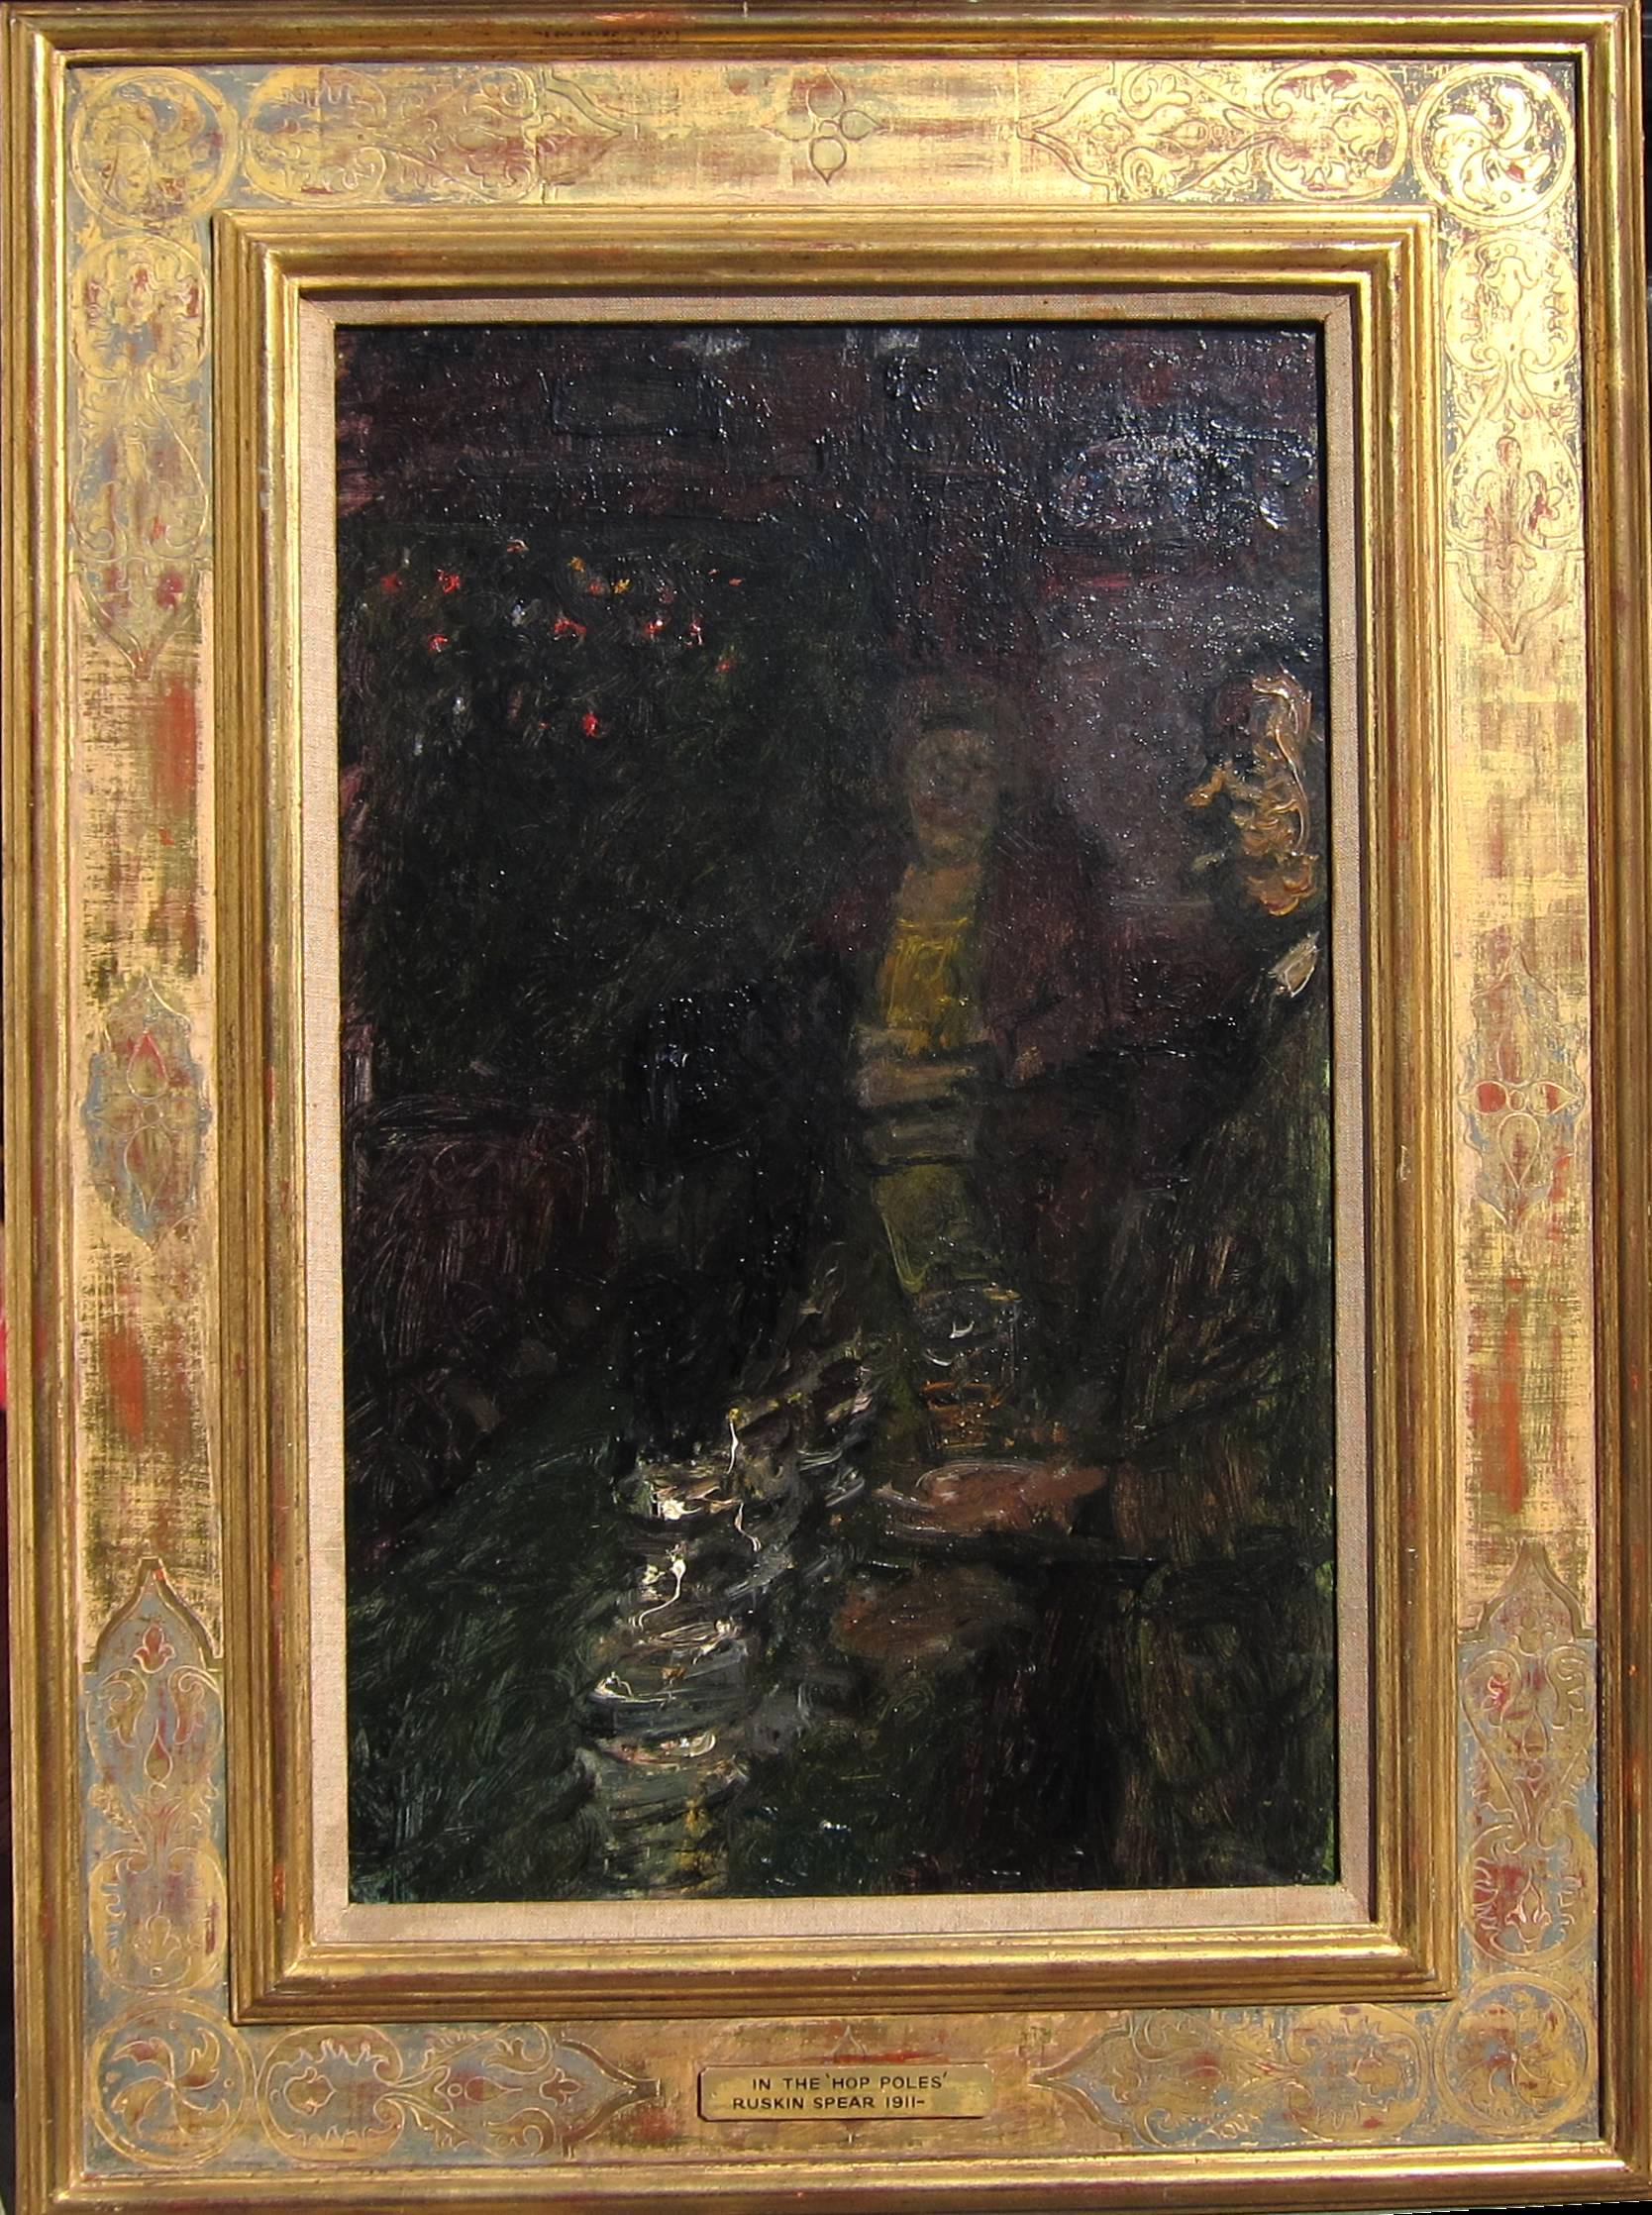 RUSKIN SPEAR, R.A. [1911-90]. In the Hop Poles. Oil on board. Signed and titled on a label on the - Image 2 of 2